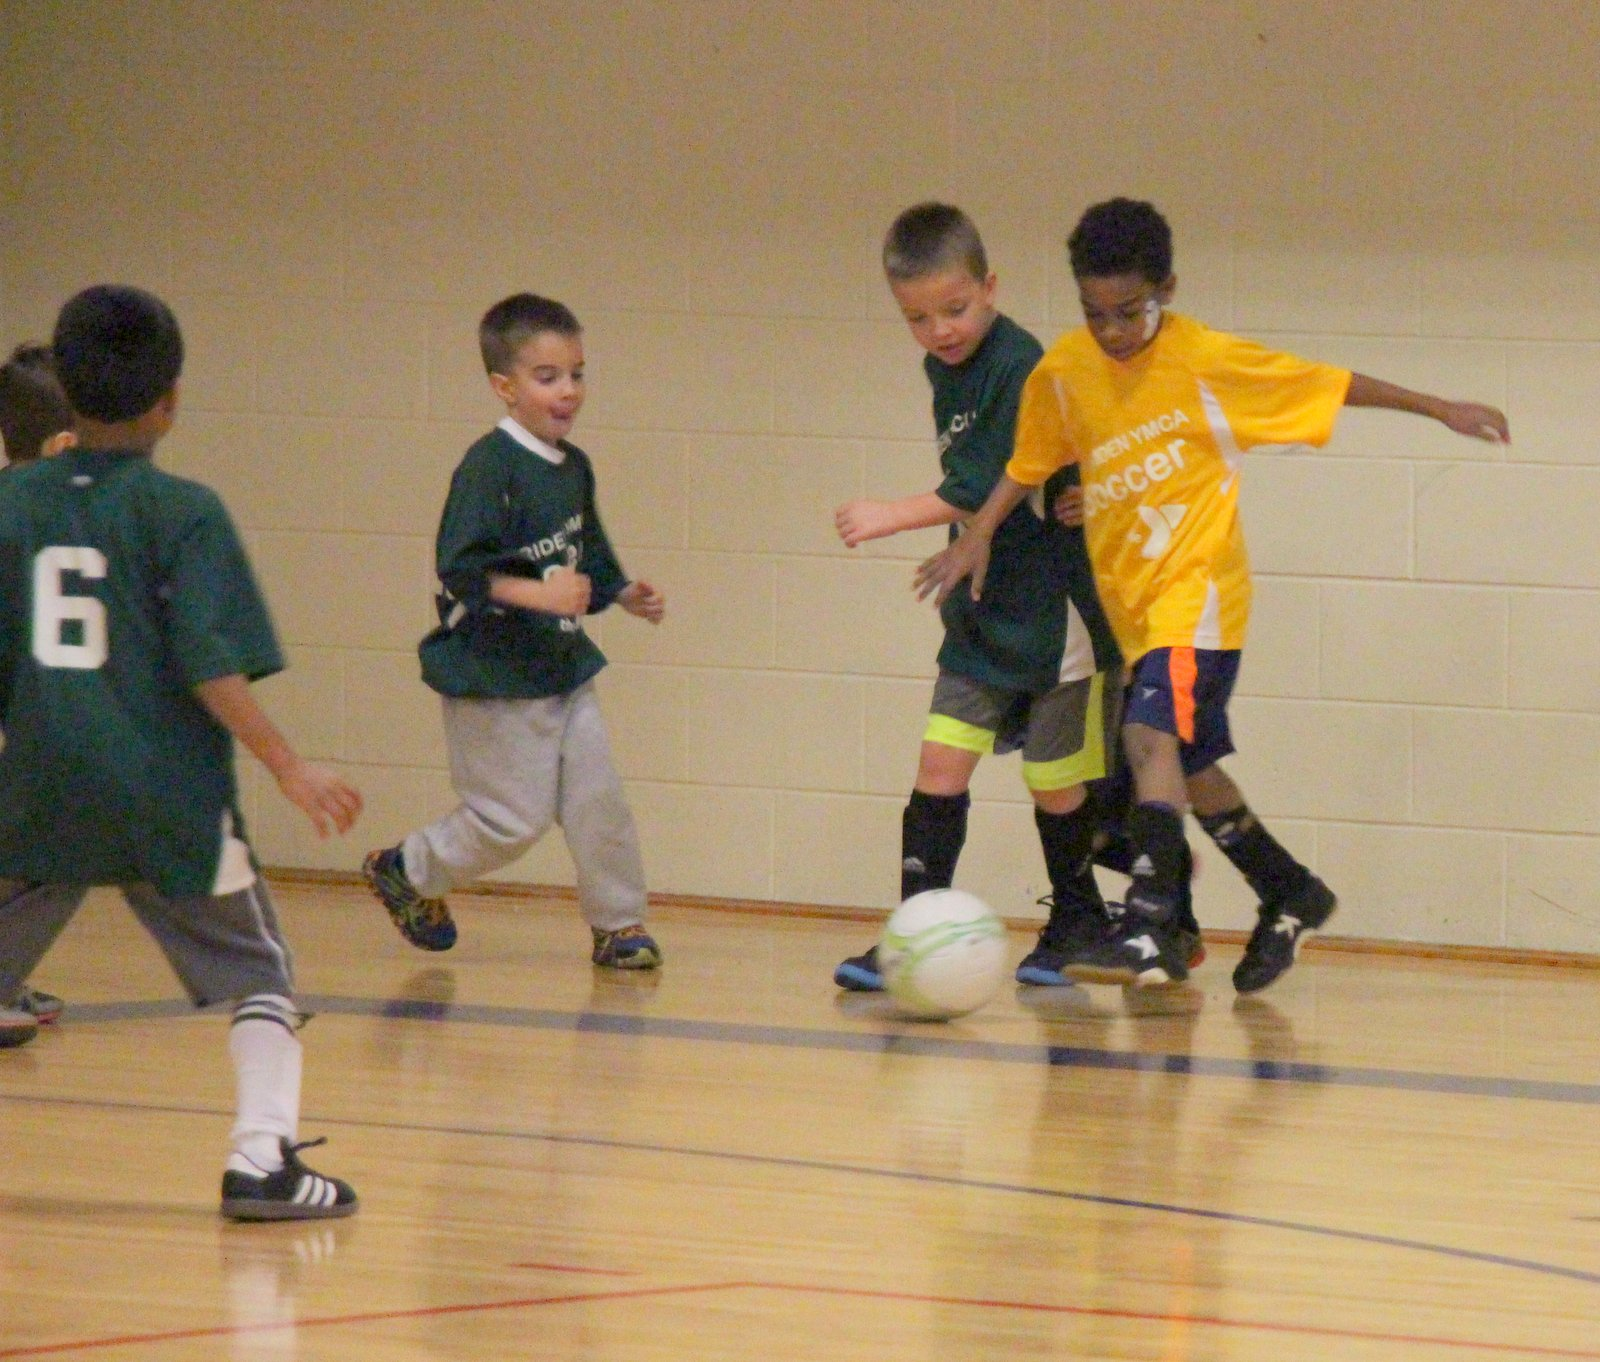 Children S Youth Sports: Soccer